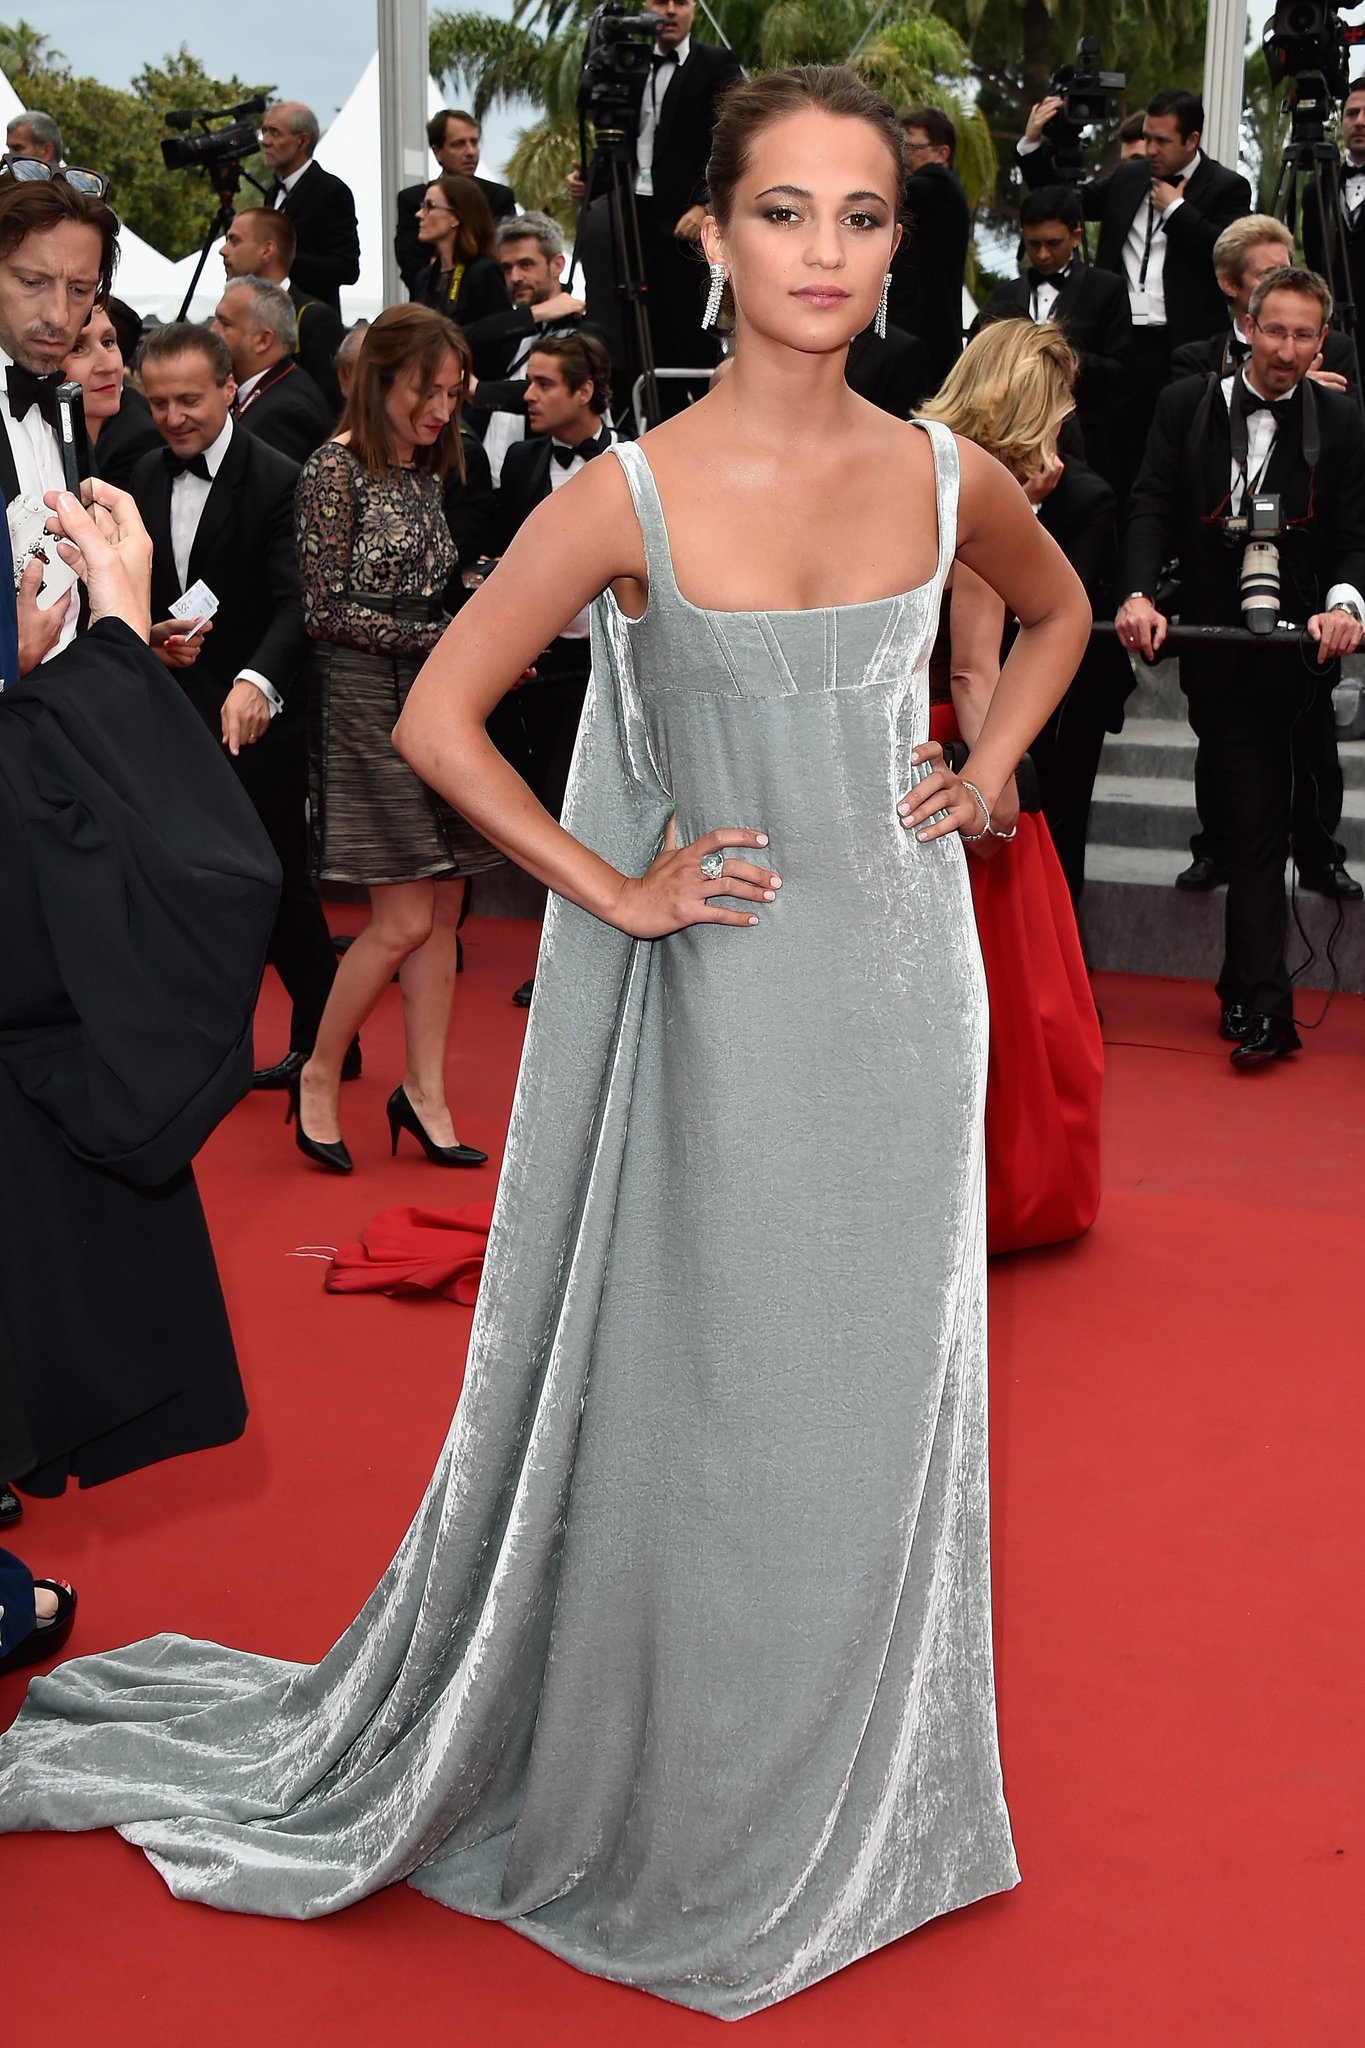 Celebrating our cover star Alicia Vikander's ecclectic red carpet style https://t.co/7zEXVOTOey https://t.co/YsYr5VH3ga